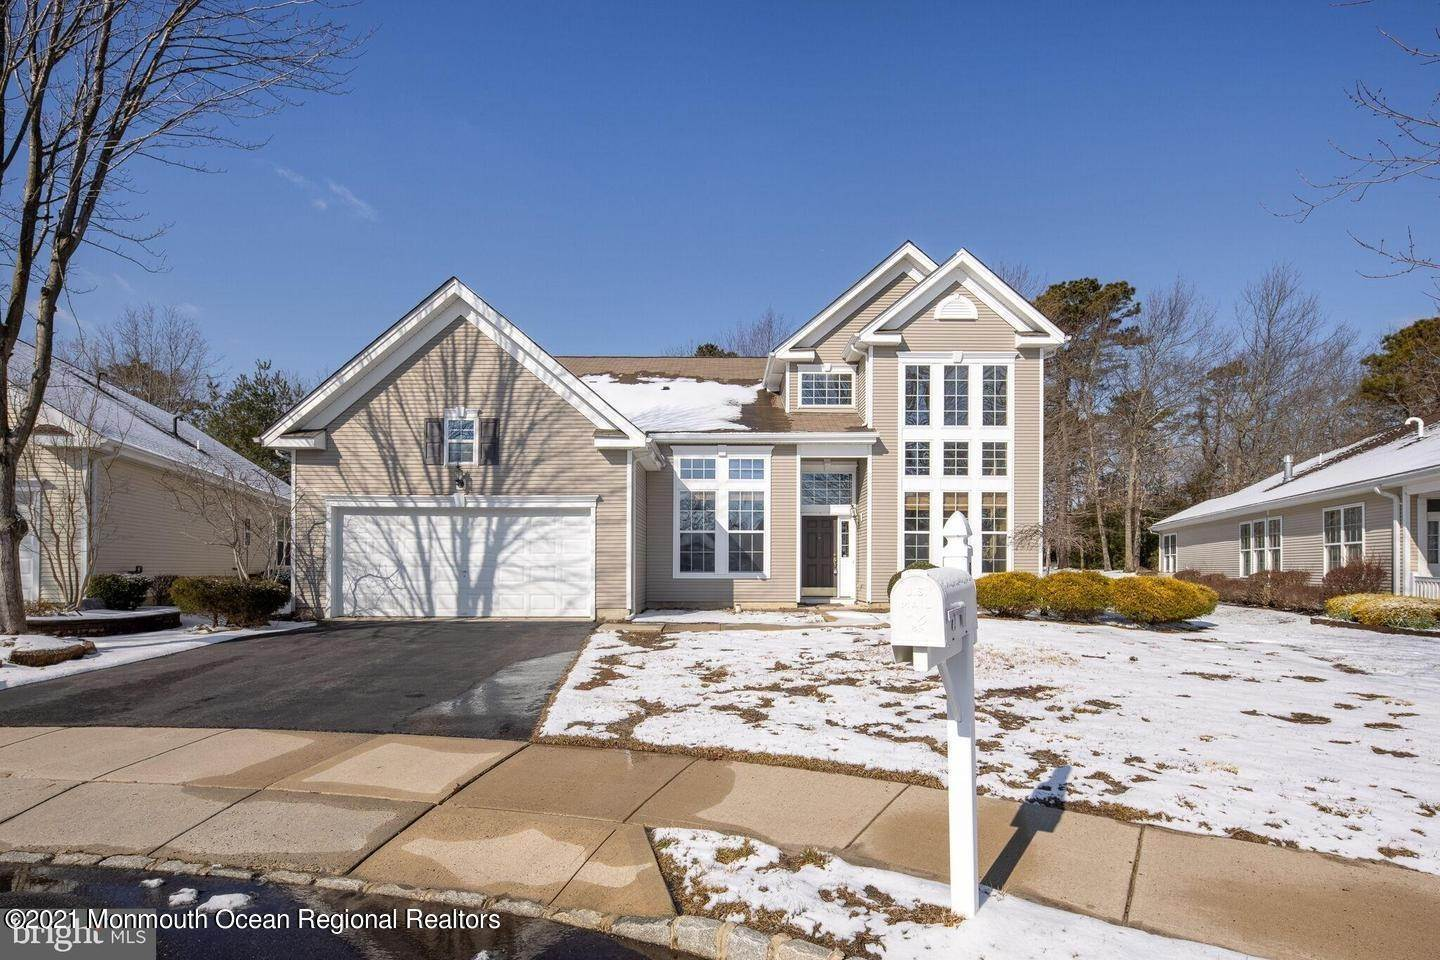 3. Single Family Homes for Sale at 10 Whitecaps Terr Terrace Barnegat, New Jersey 08005 United States